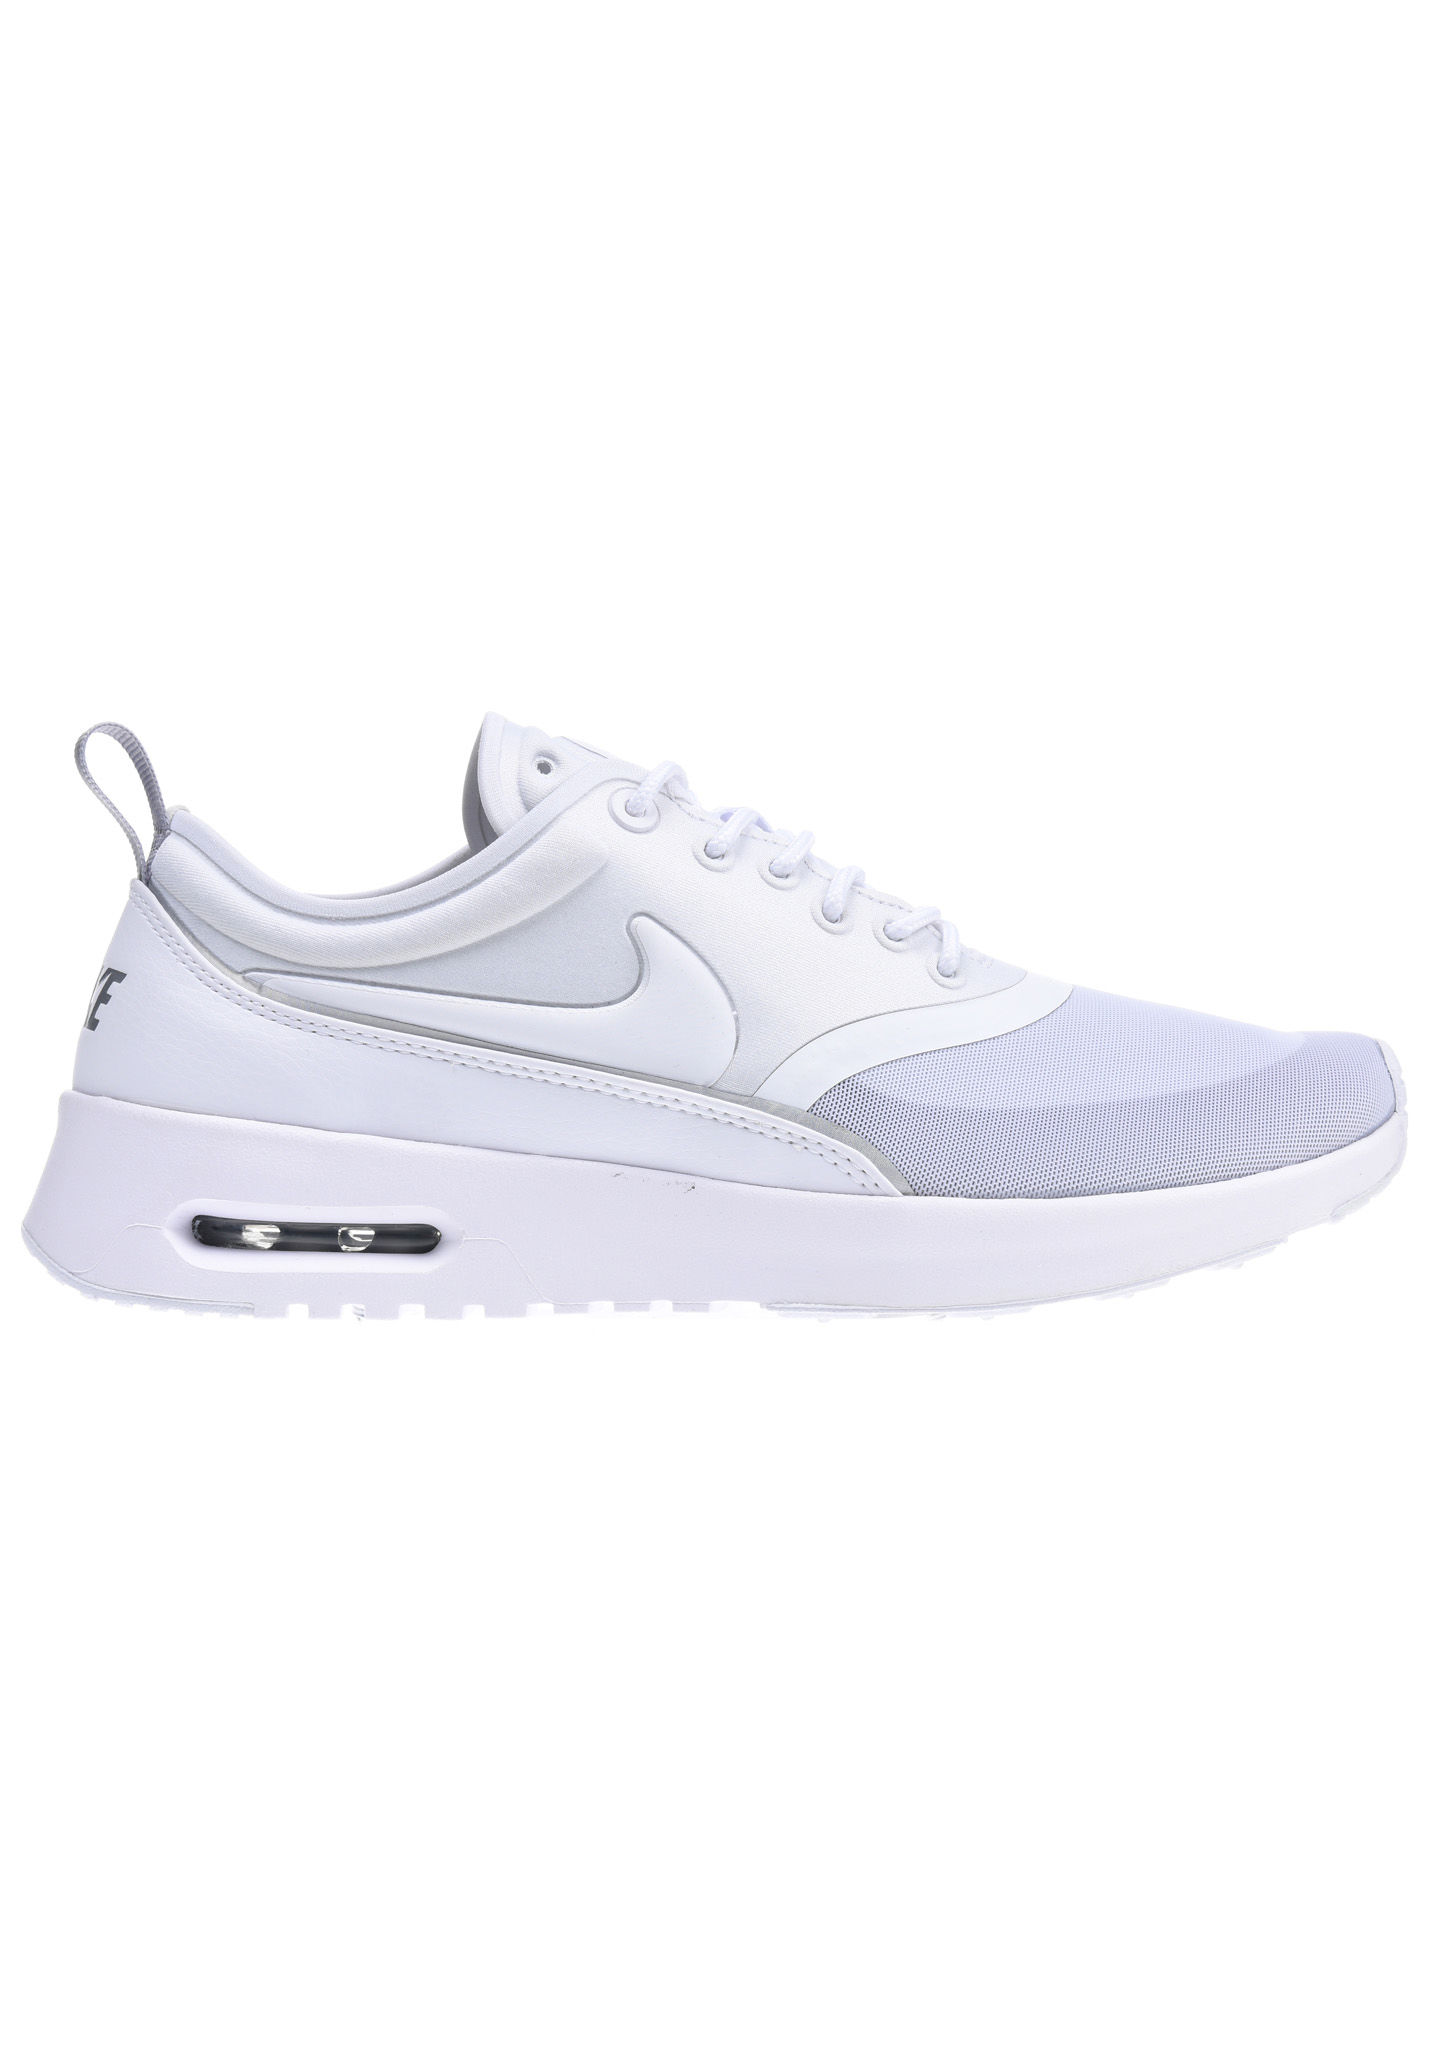 ff89b0d4d62 NIKE SPORTSWEAR Air Max Thea Ultra - Sneakers voor Dames - Wit - Planet  Sports